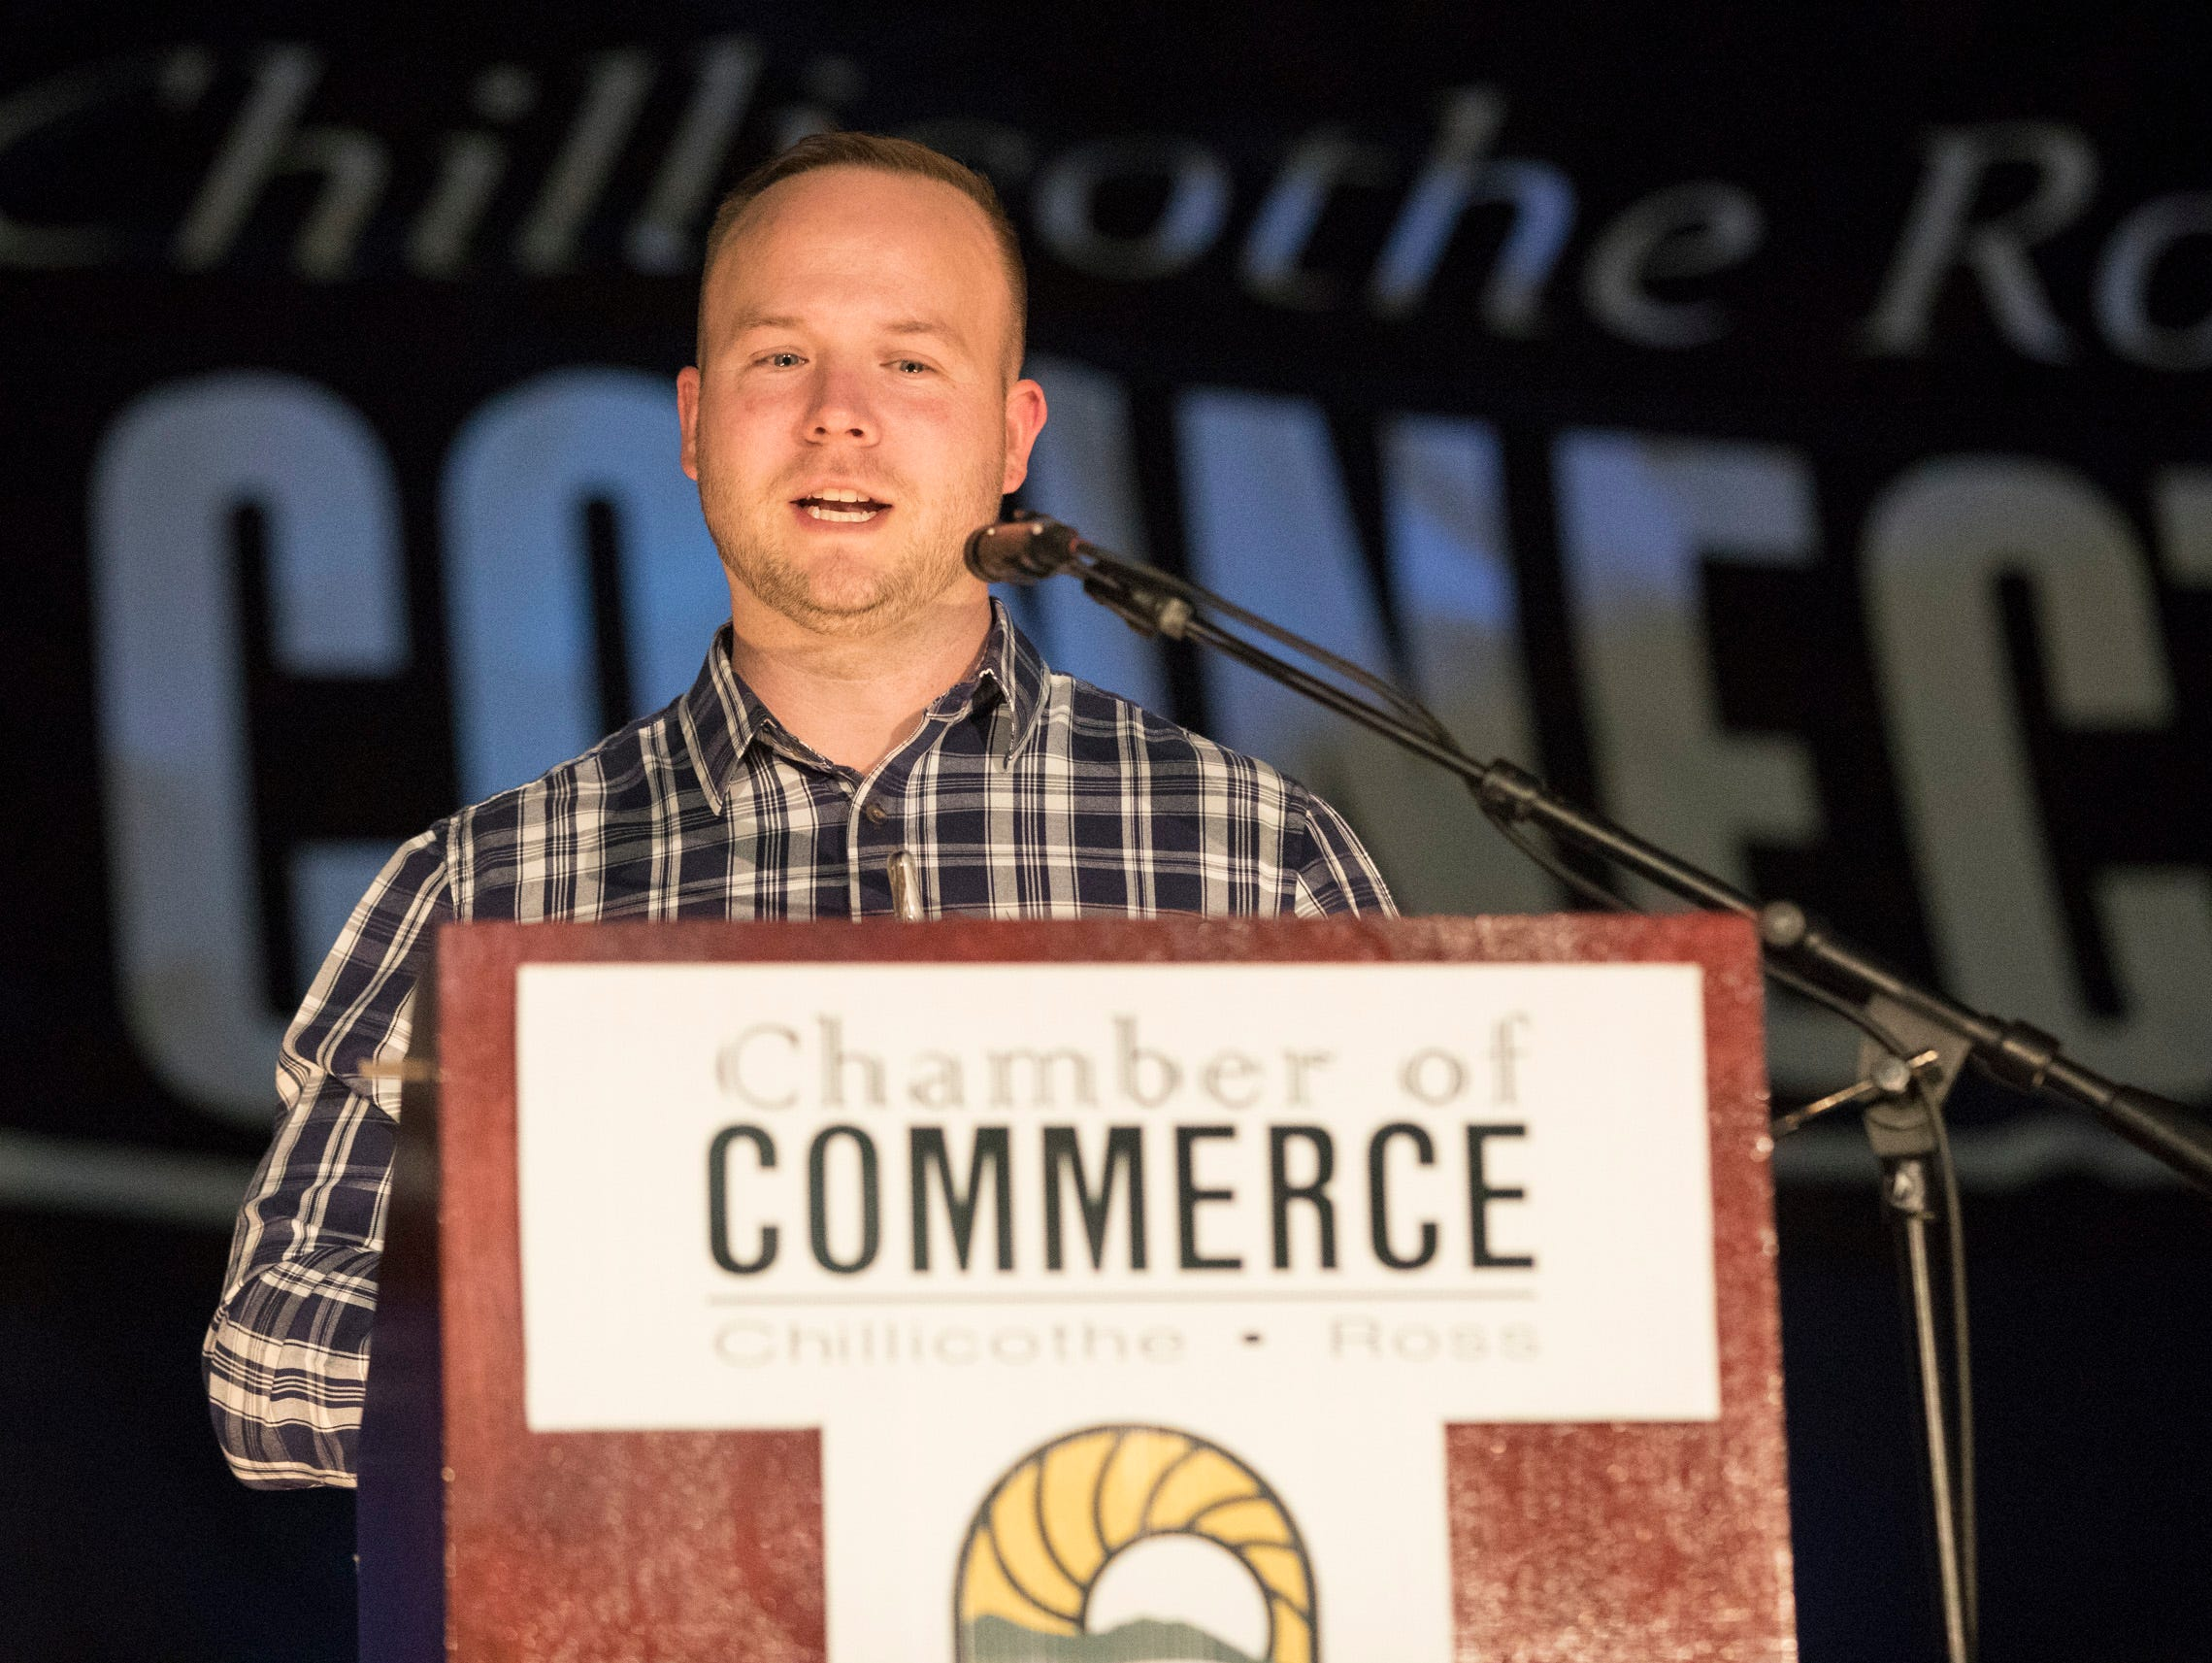 Ben Daughters received the Young Professional of the Year award at the 2019 Chillicothe and Ross County Chamber of Commerce annual meeting on March 12, 2019.